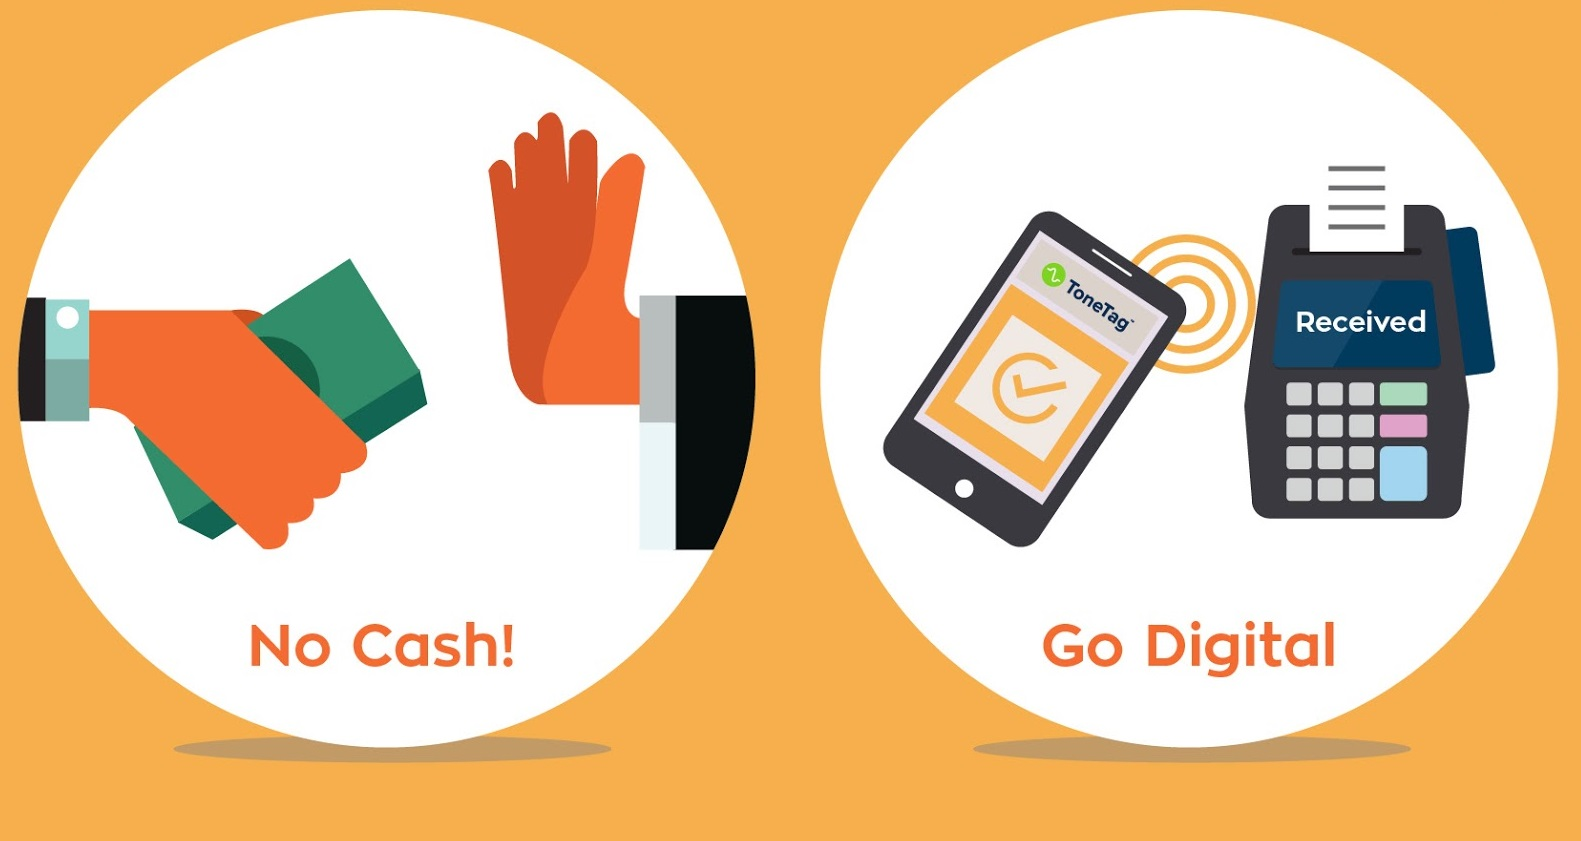 Cashless Society Pros and Cons